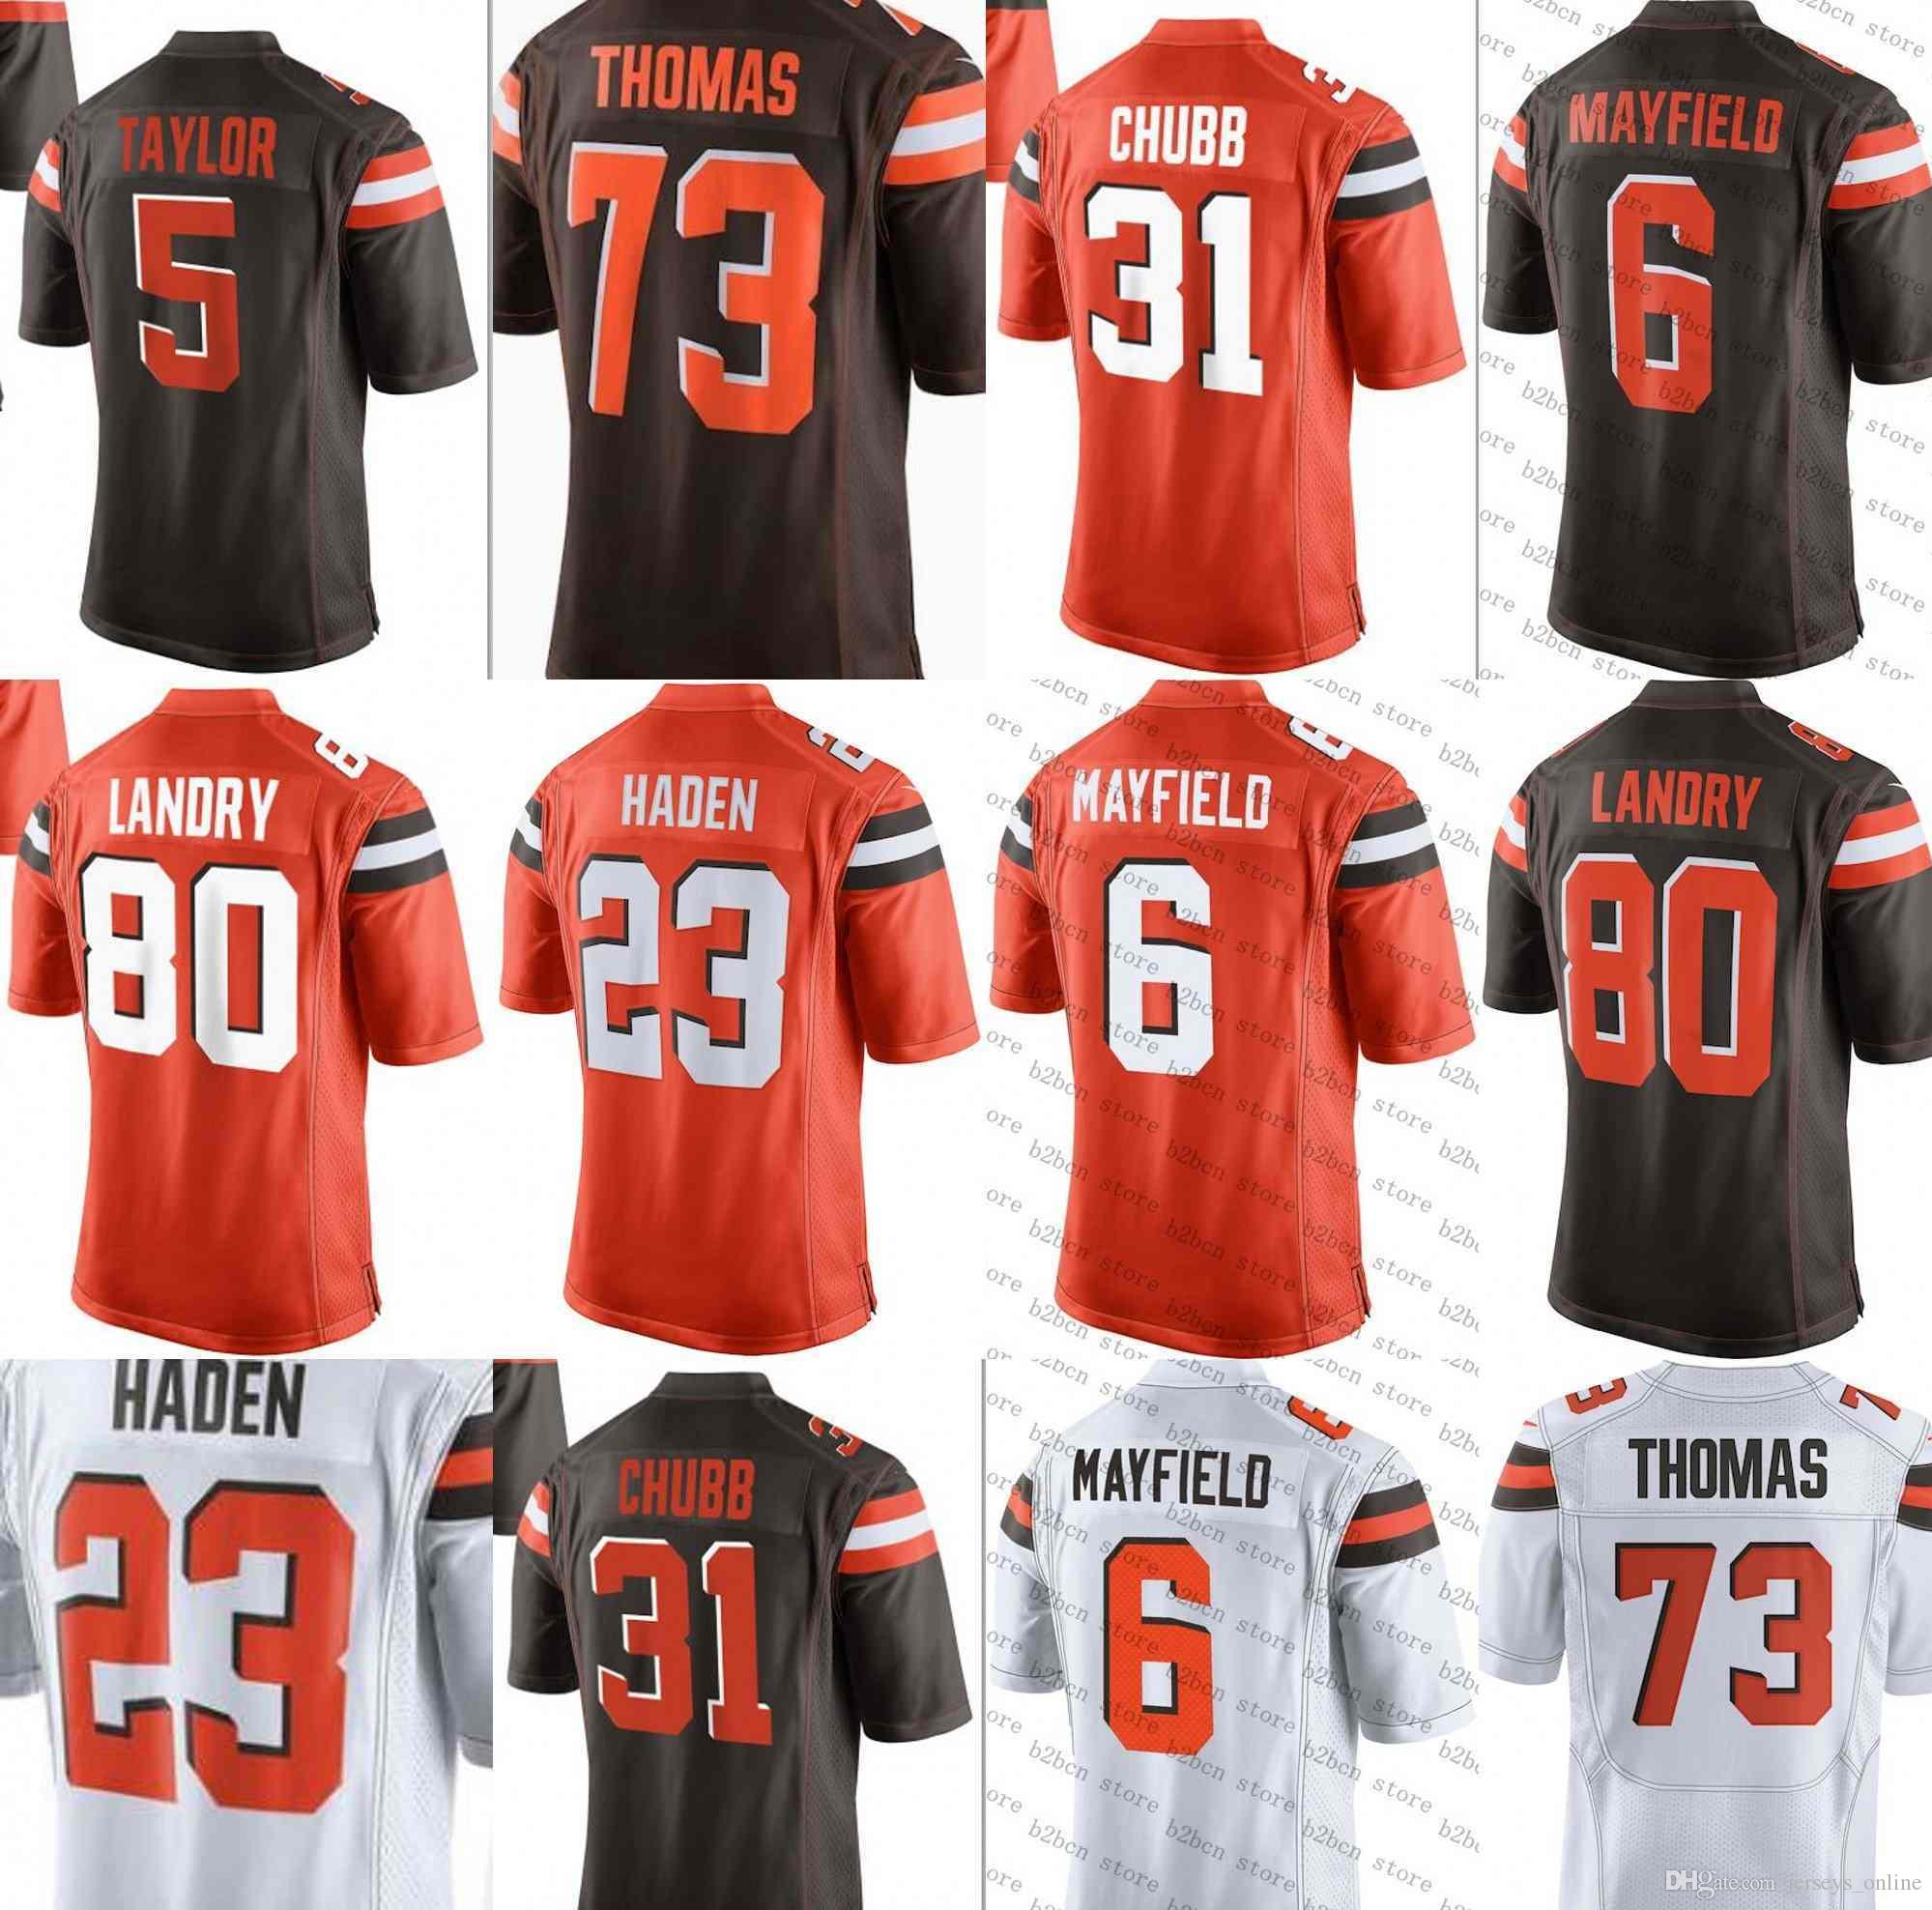 061e9fc54 2019 6 Baker Mayfield Cleveland Jersey 22 Jabrill Peppers Brown 95 Myles  Garrett 80 Jarvis Landry 73 Joe Thomas 21 Denzel Ward 100% Stitched01 From  ...